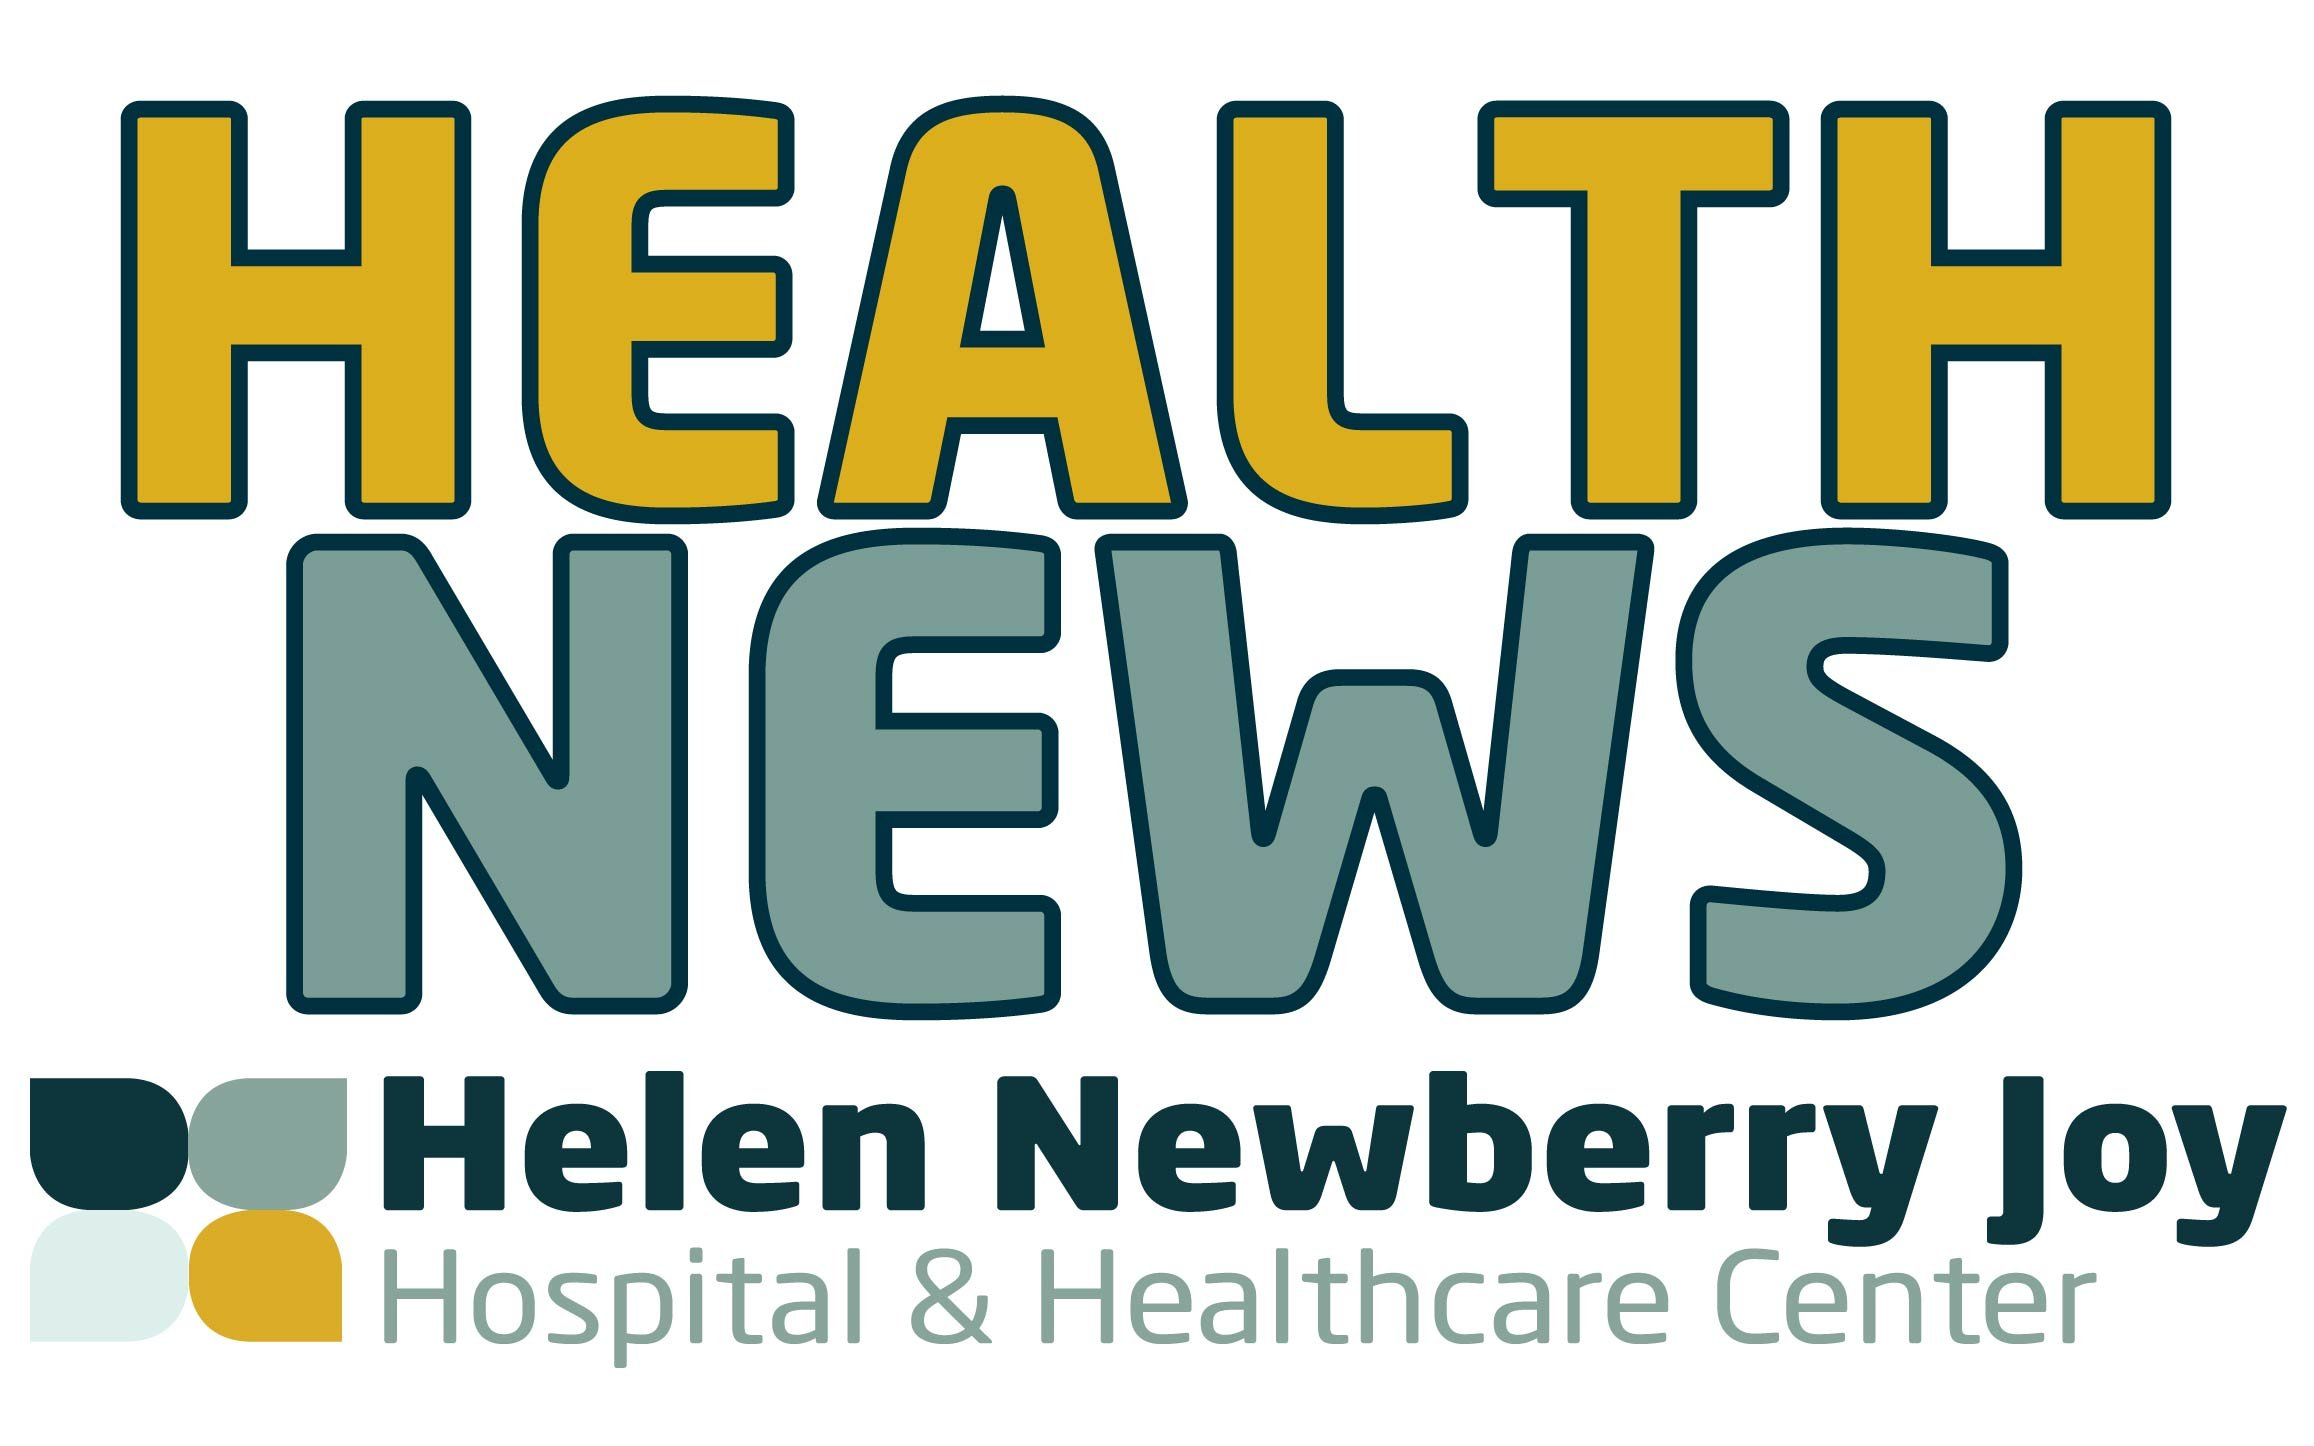 helen newberry joy hospital health news logo